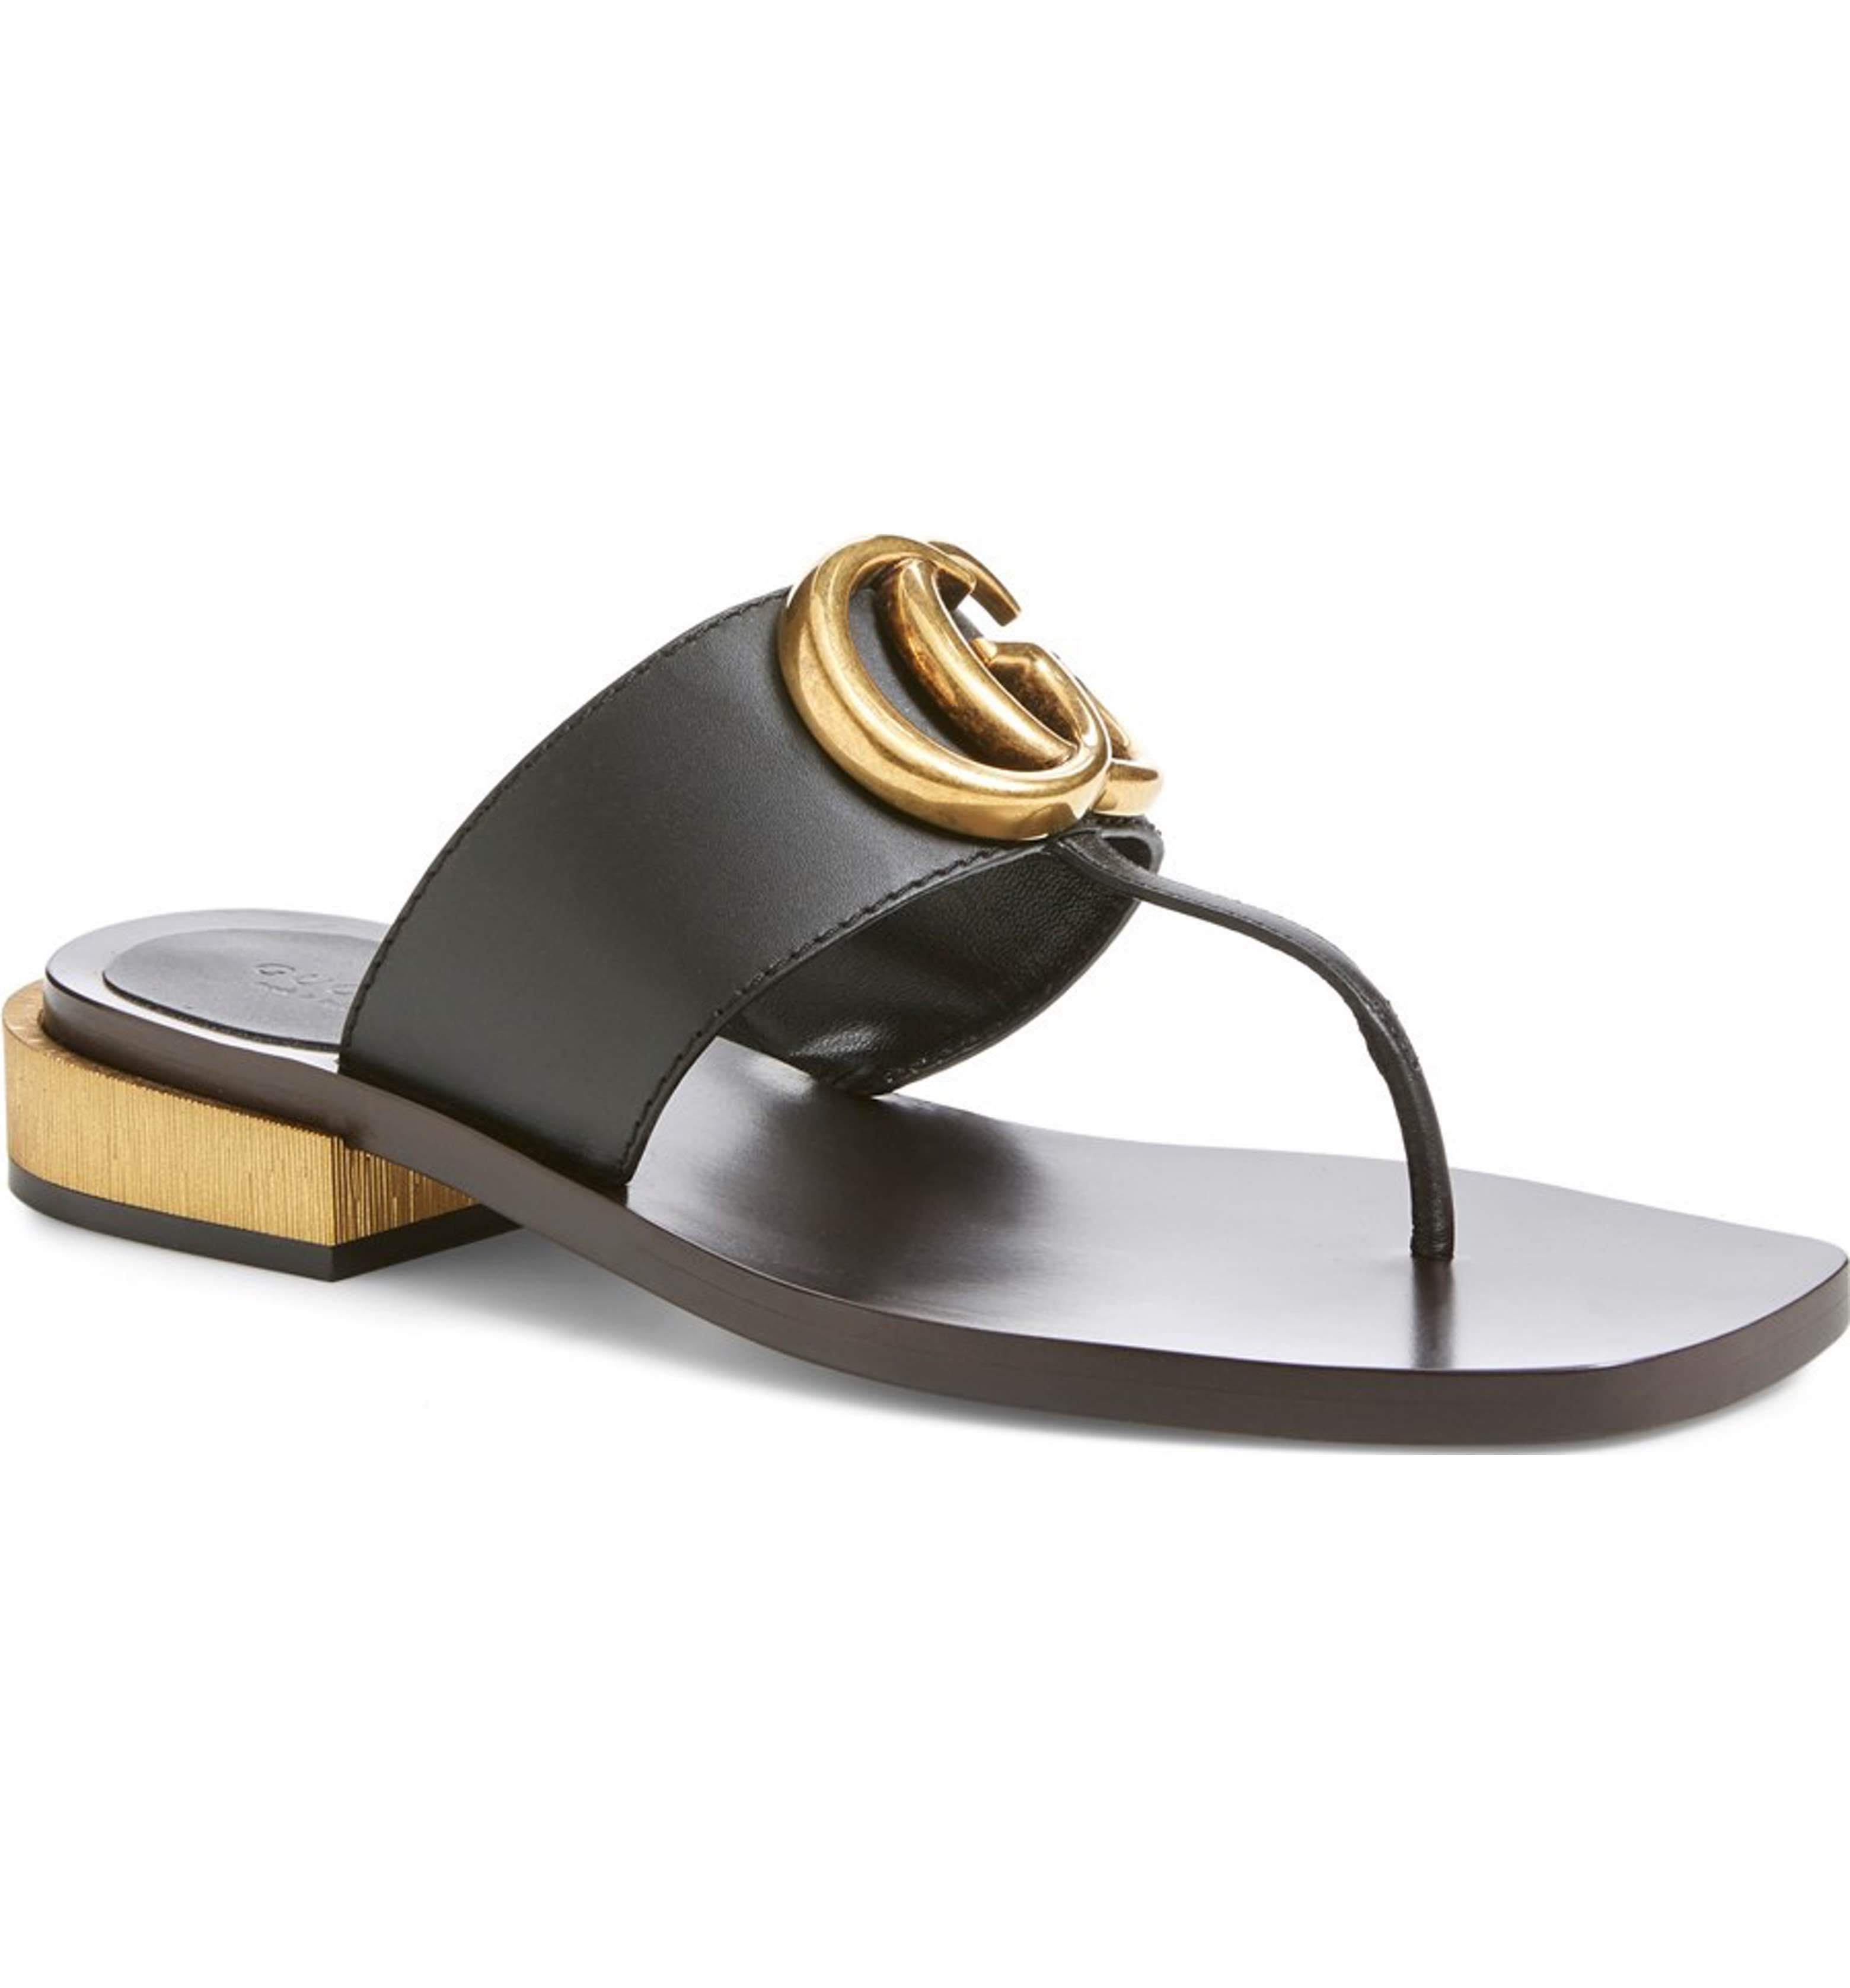 Womens gucci sandals